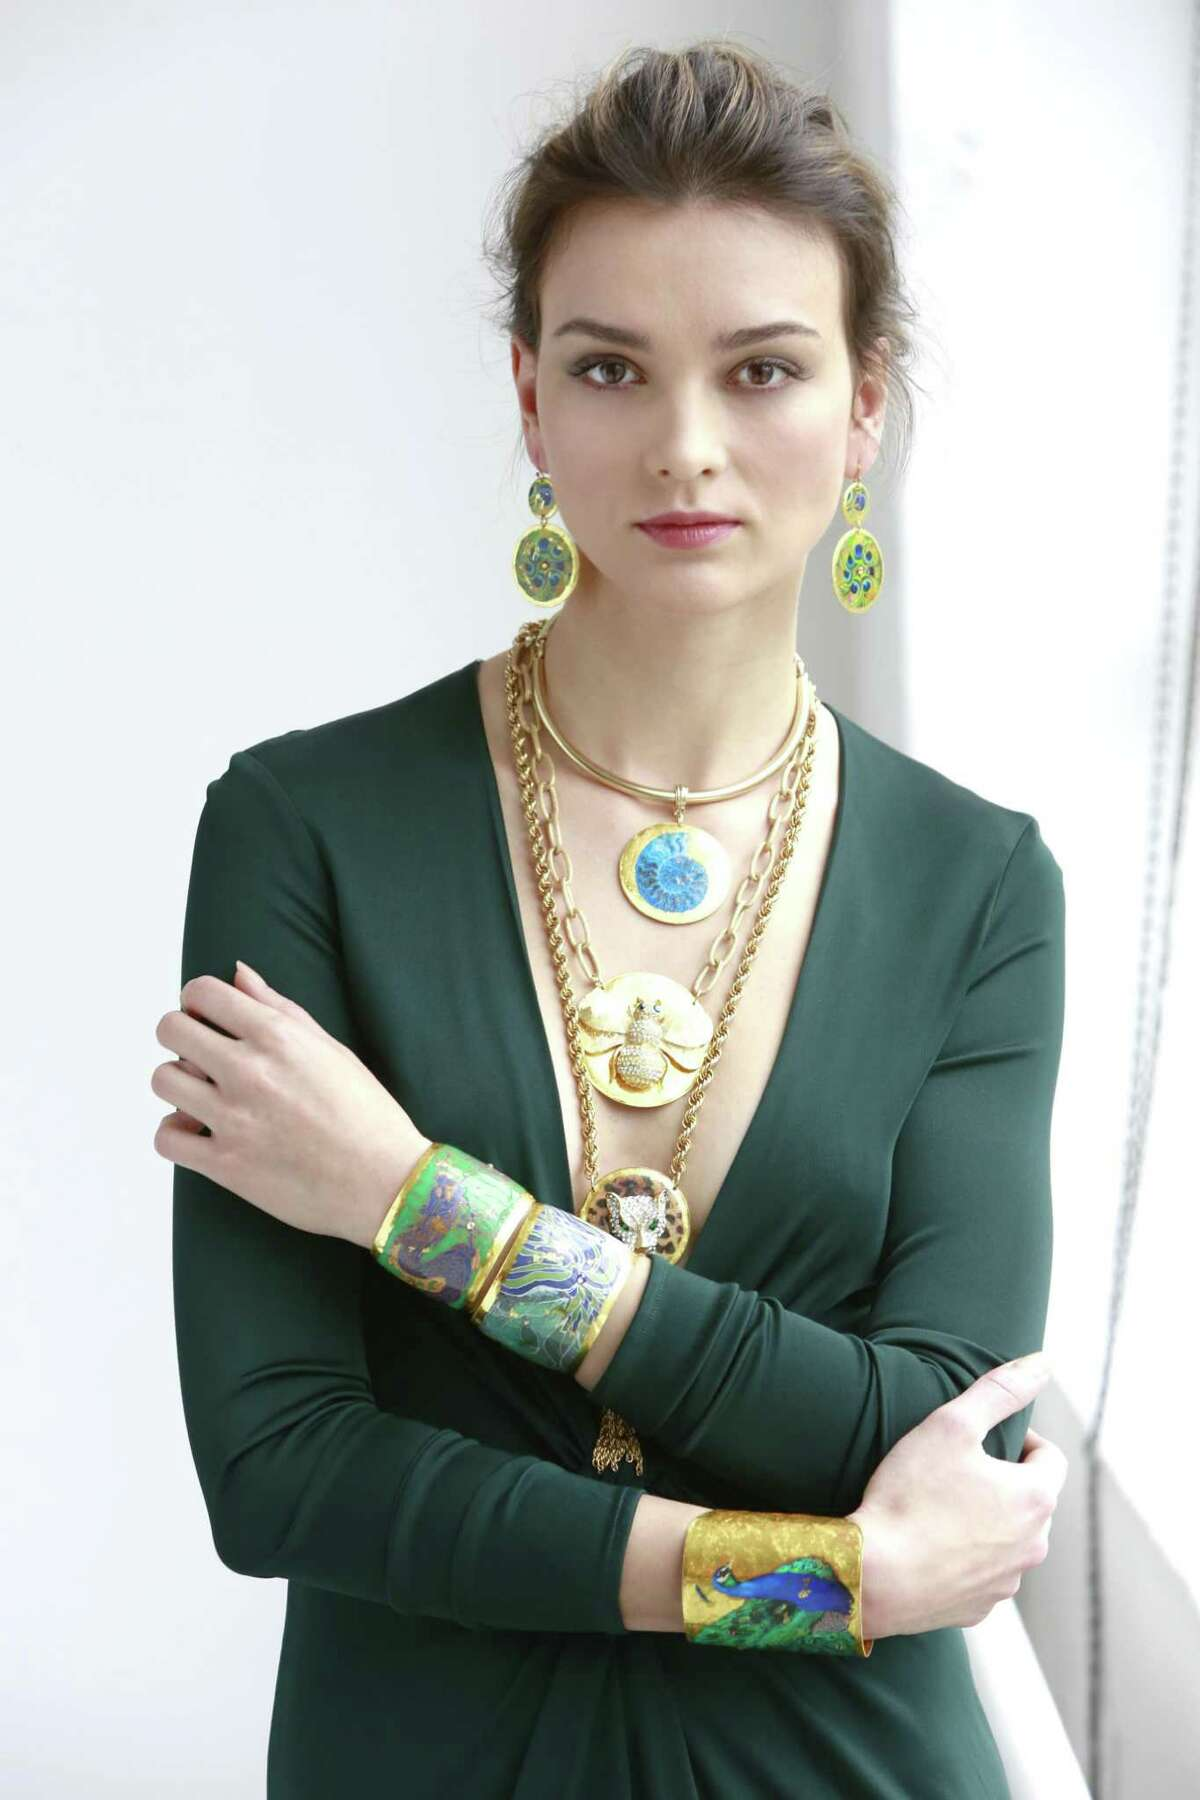 A model wears several pieces from the Evocateur line, created and founded by Westport resident Barbara Ross-Innamorati. In seven years, she has launched multiple collections of bangles, cuffs, necklaces and earrings that are inspired by her interests, including art, travel and Old World civilizations.